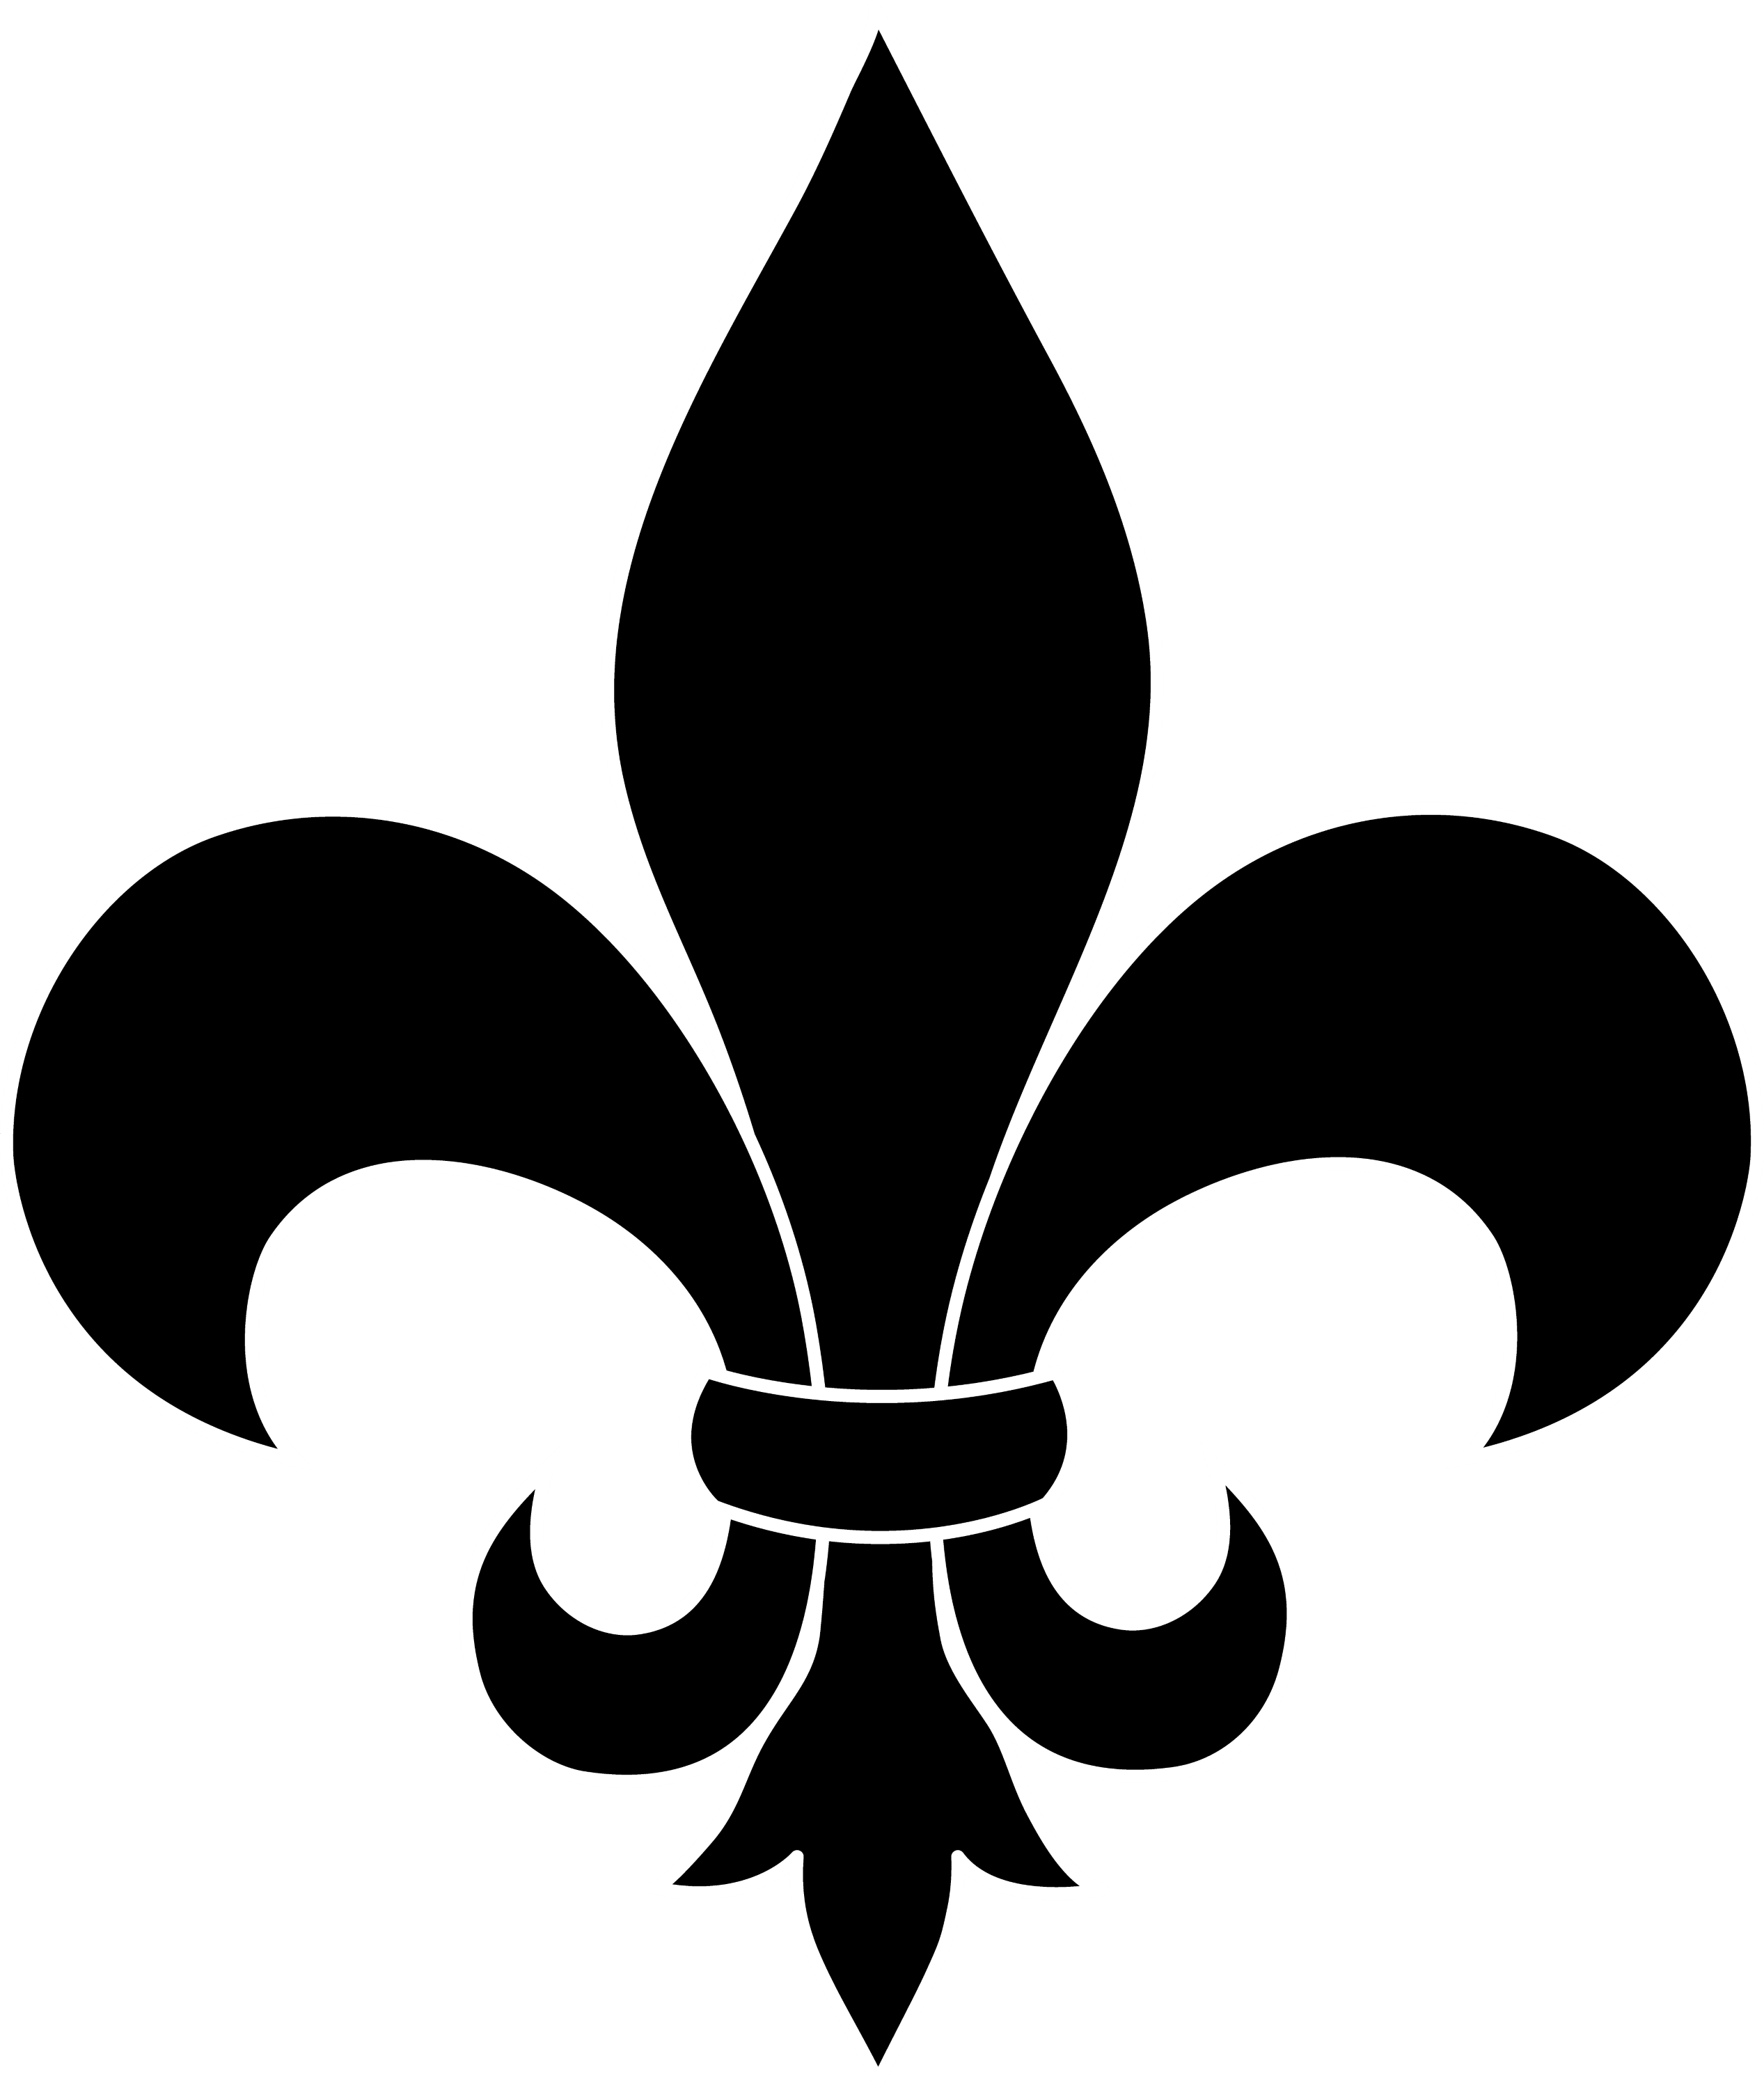 black fleur de lis silhouette free clip art. Black Bedroom Furniture Sets. Home Design Ideas